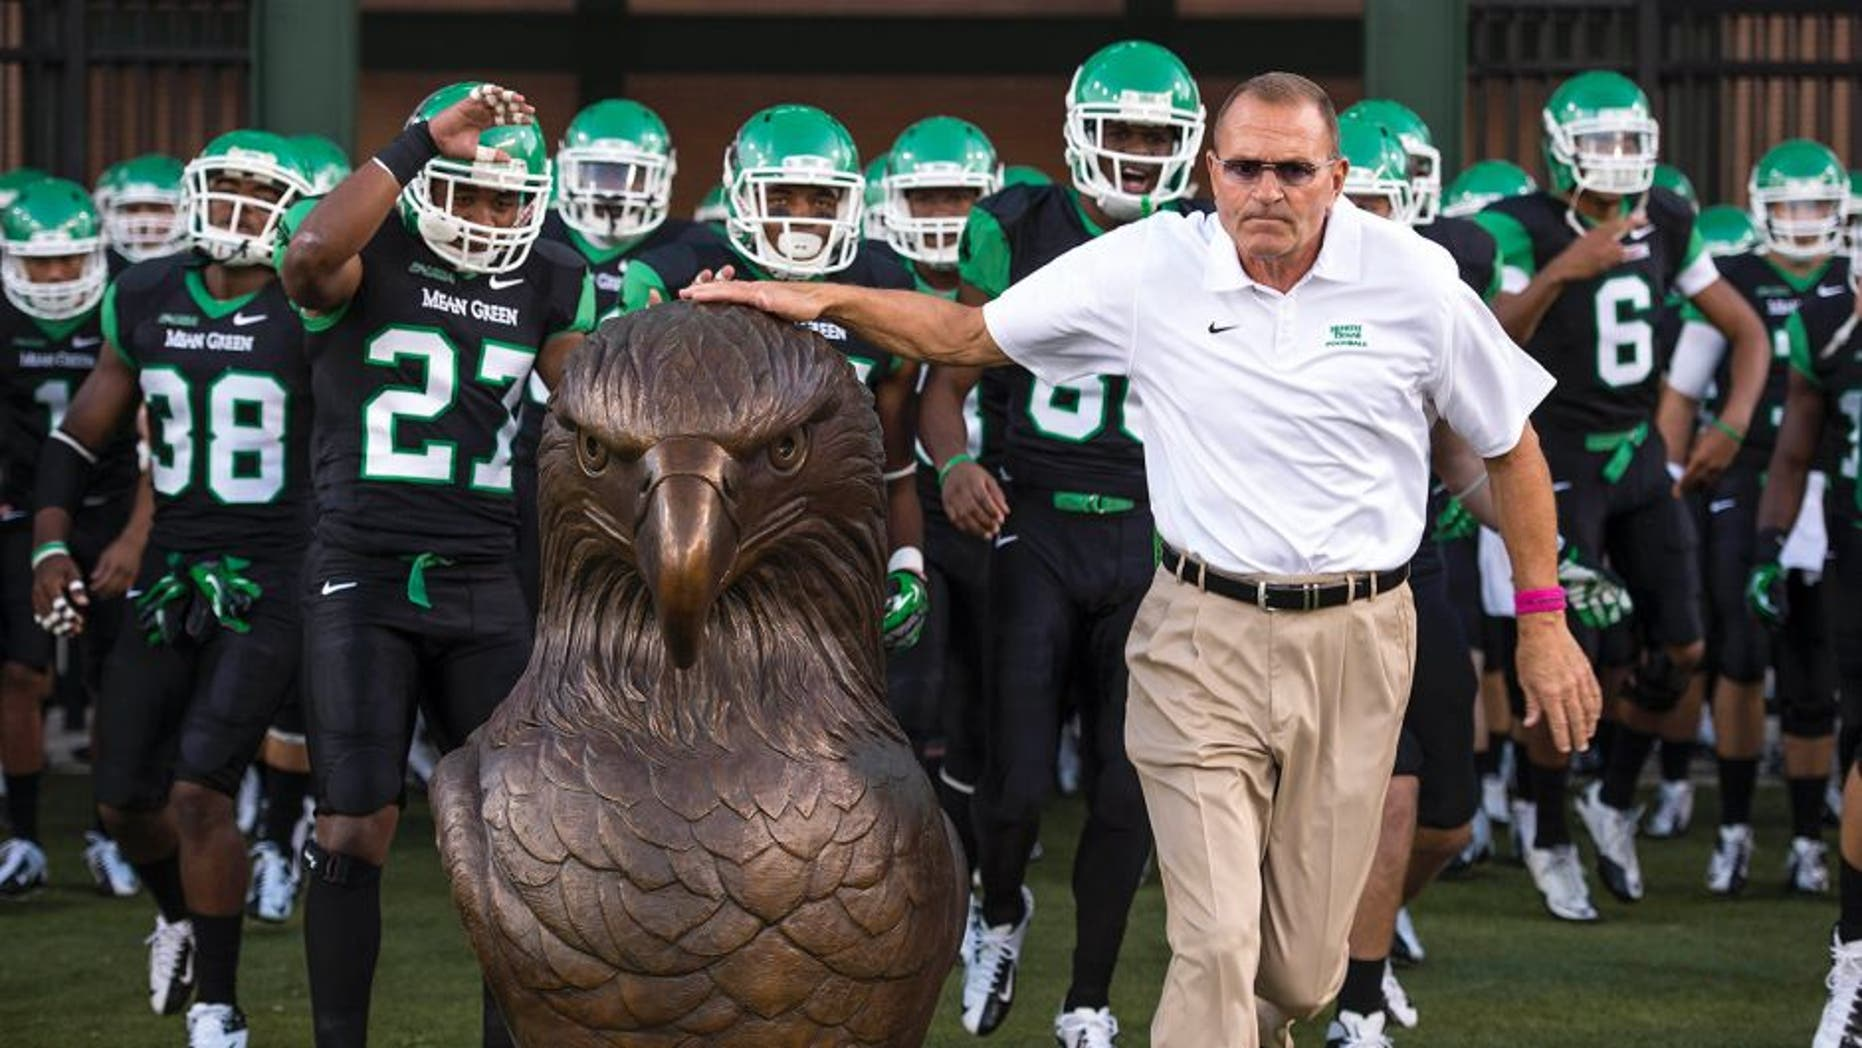 Oct 31, 2013; Denton, TX, USA; North Texas Mean Green head coach Dan McCarney leads his team on the field to face the Rice Owls at Apogee Stadium. The Mean Green defeated the Owls 28-16. Mandatory Credit: Jerome Miron-USA TODAY Sports